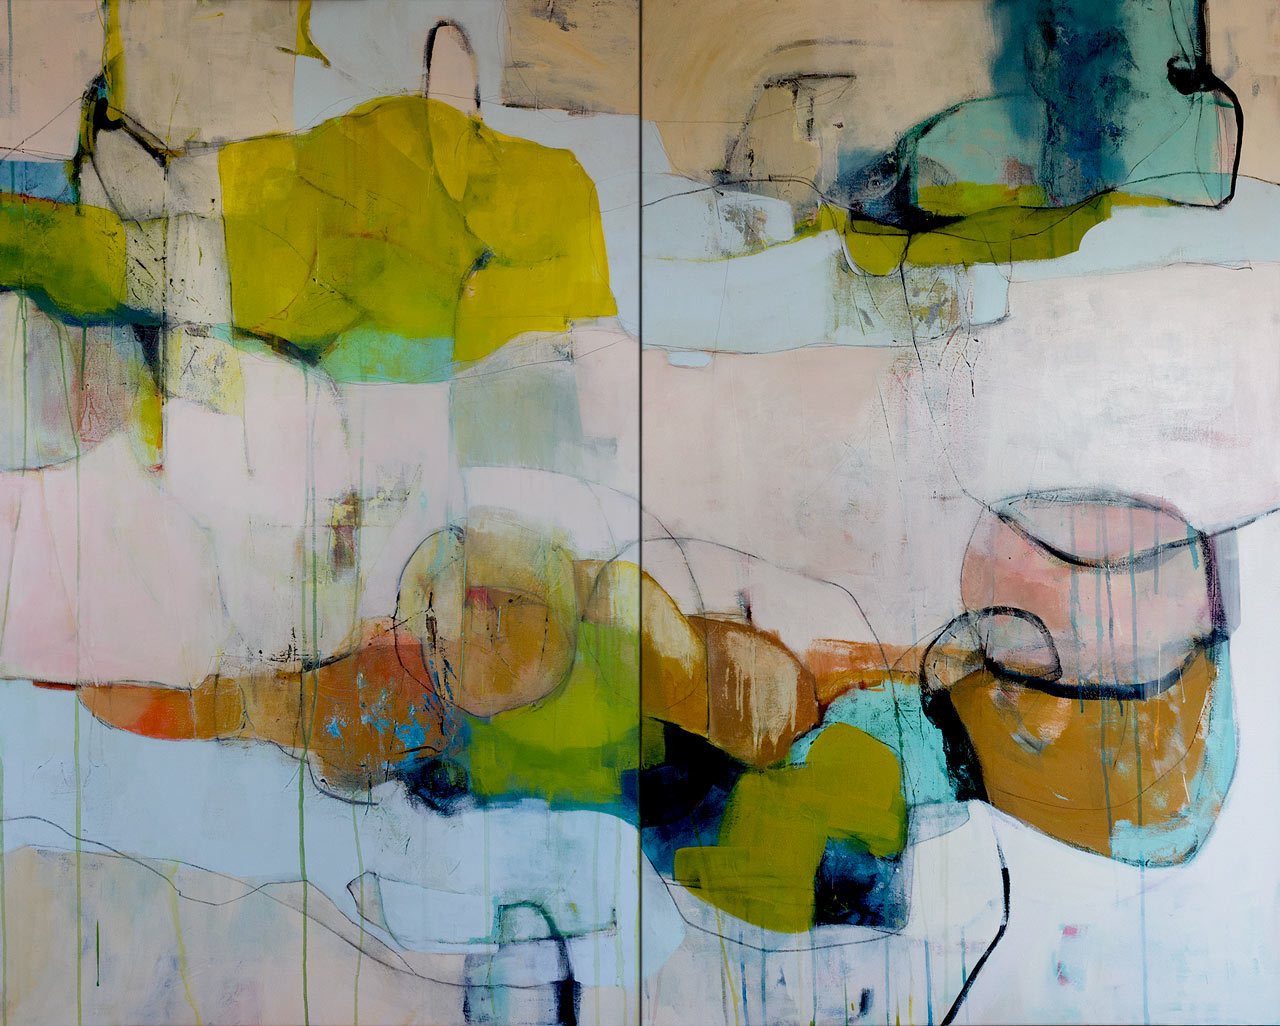 "Sleep Becomes Thin - 48"" x 60"" diptych mixed-media on canvas. - (SOLD)"